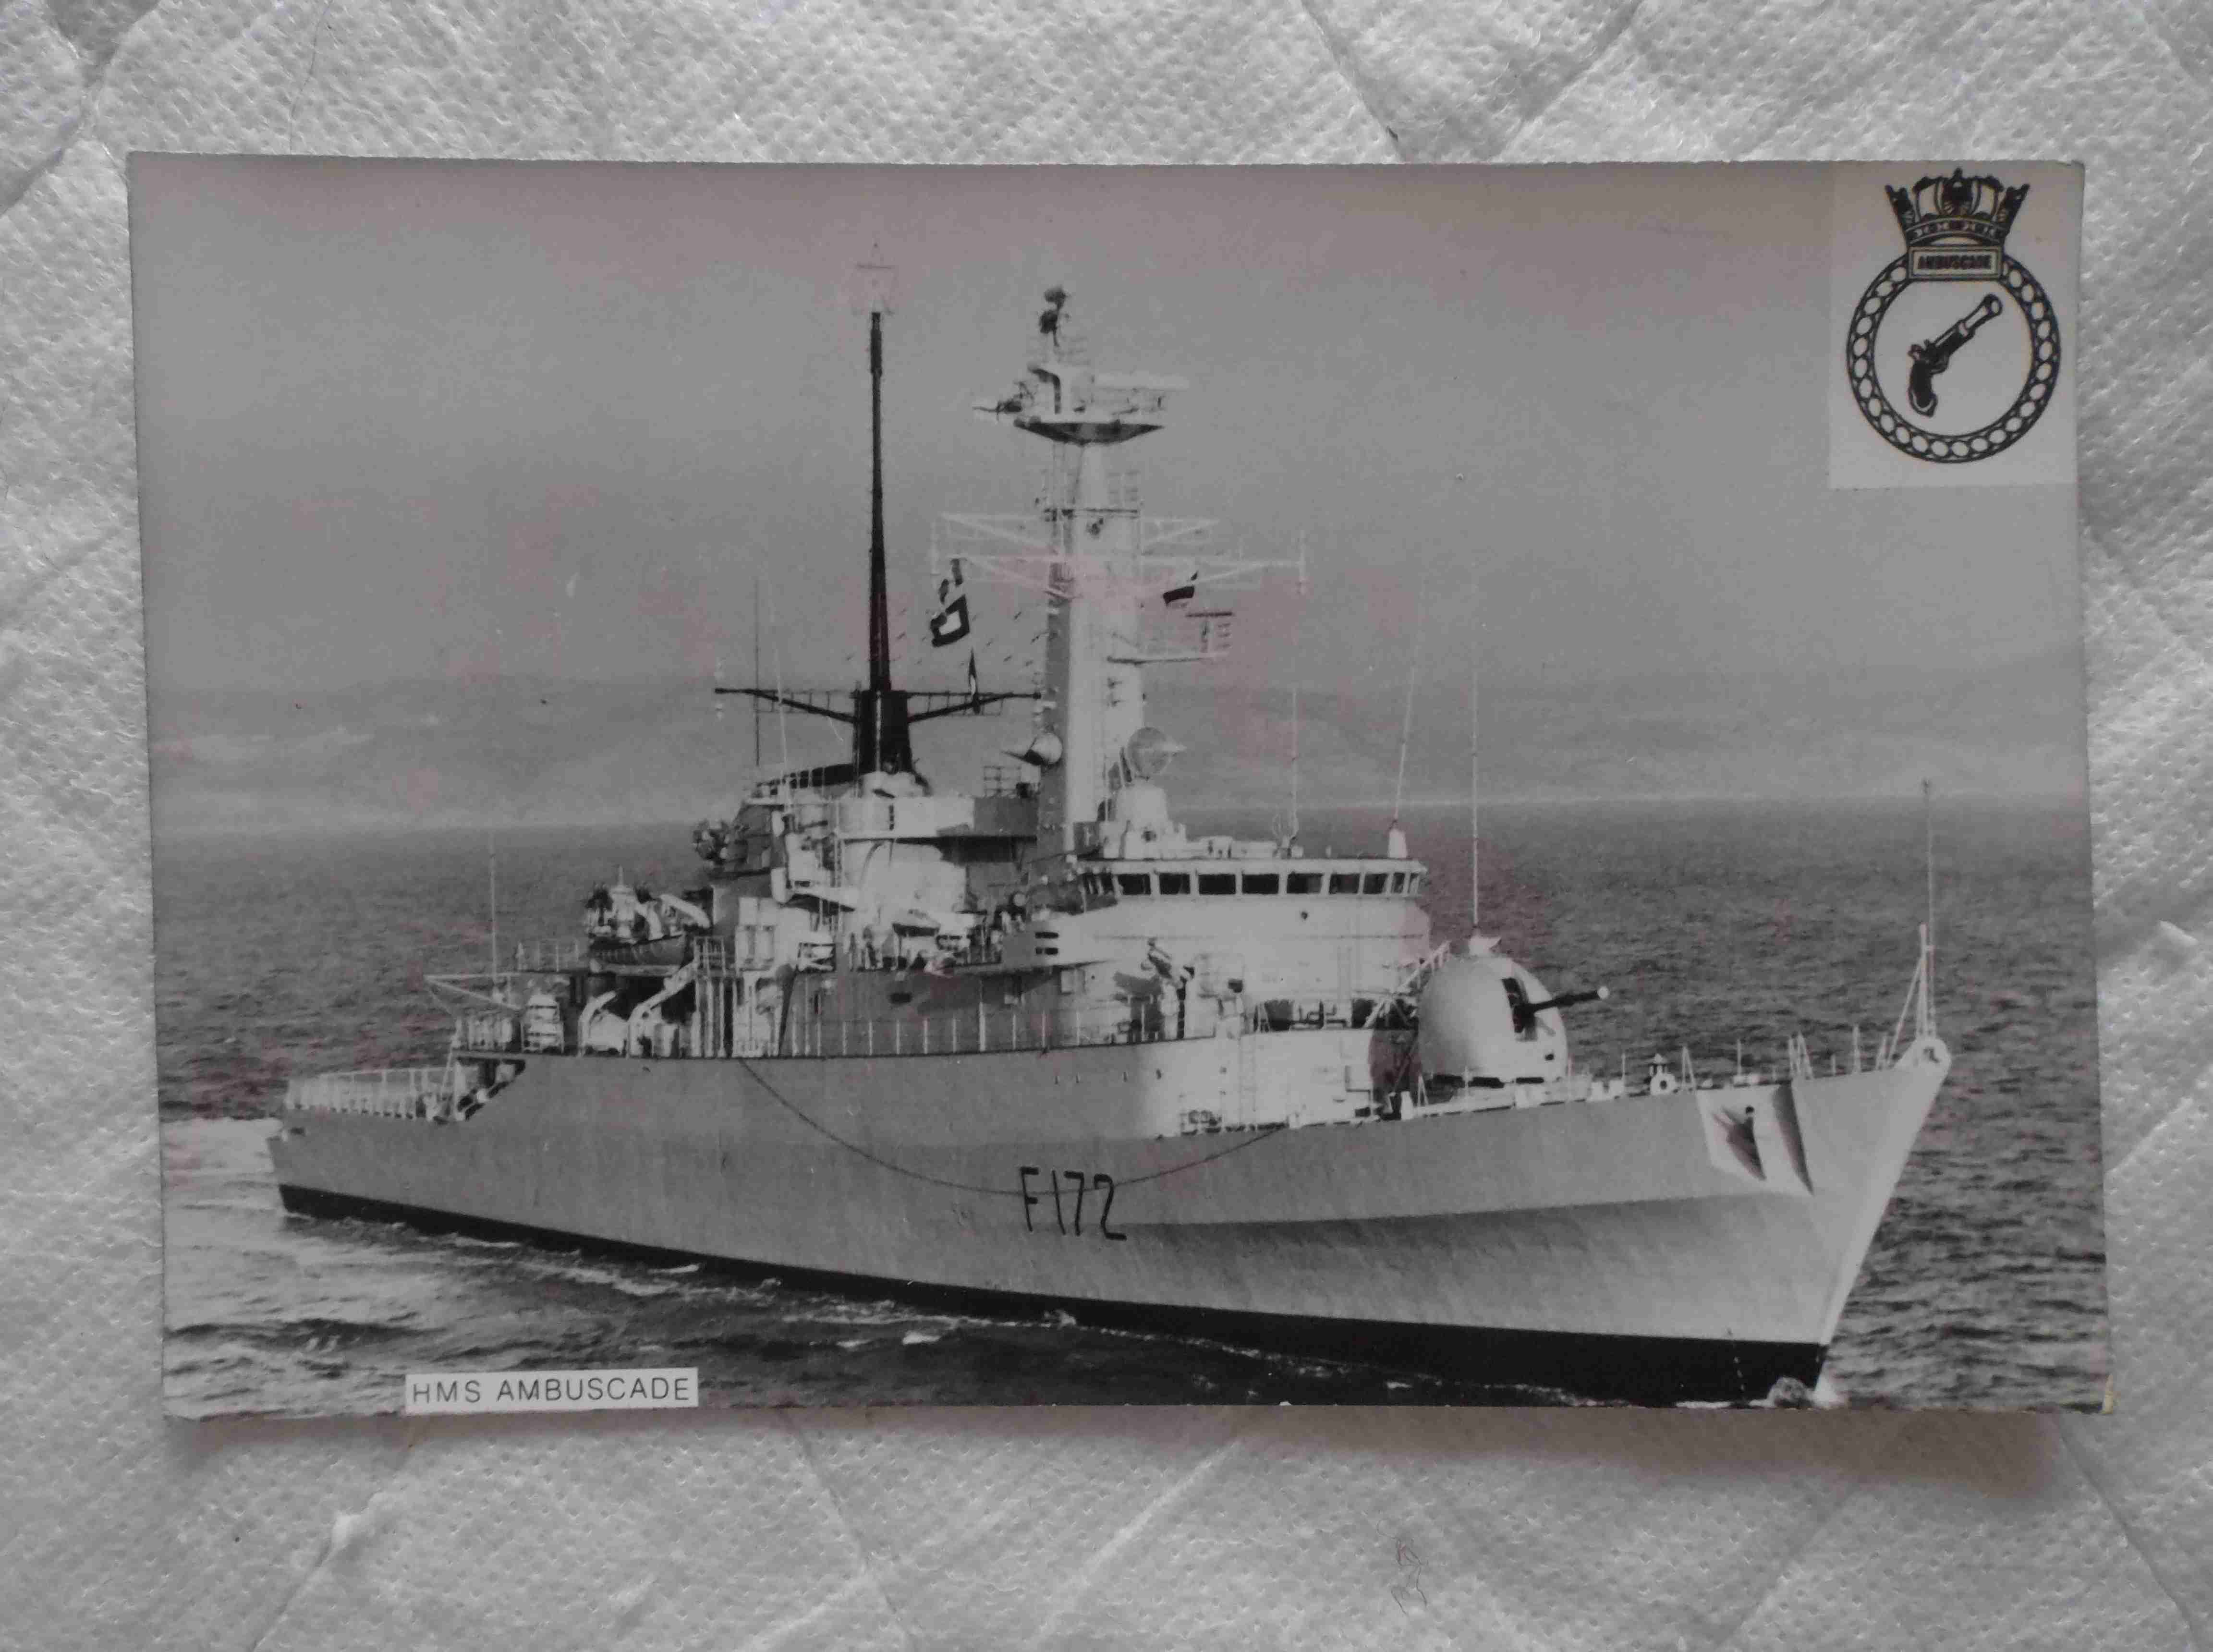 POSTCARD SIZE PHOTOGRAPH OF THE ROYAL NAVAL VESSEL HMS AMBUSCADE